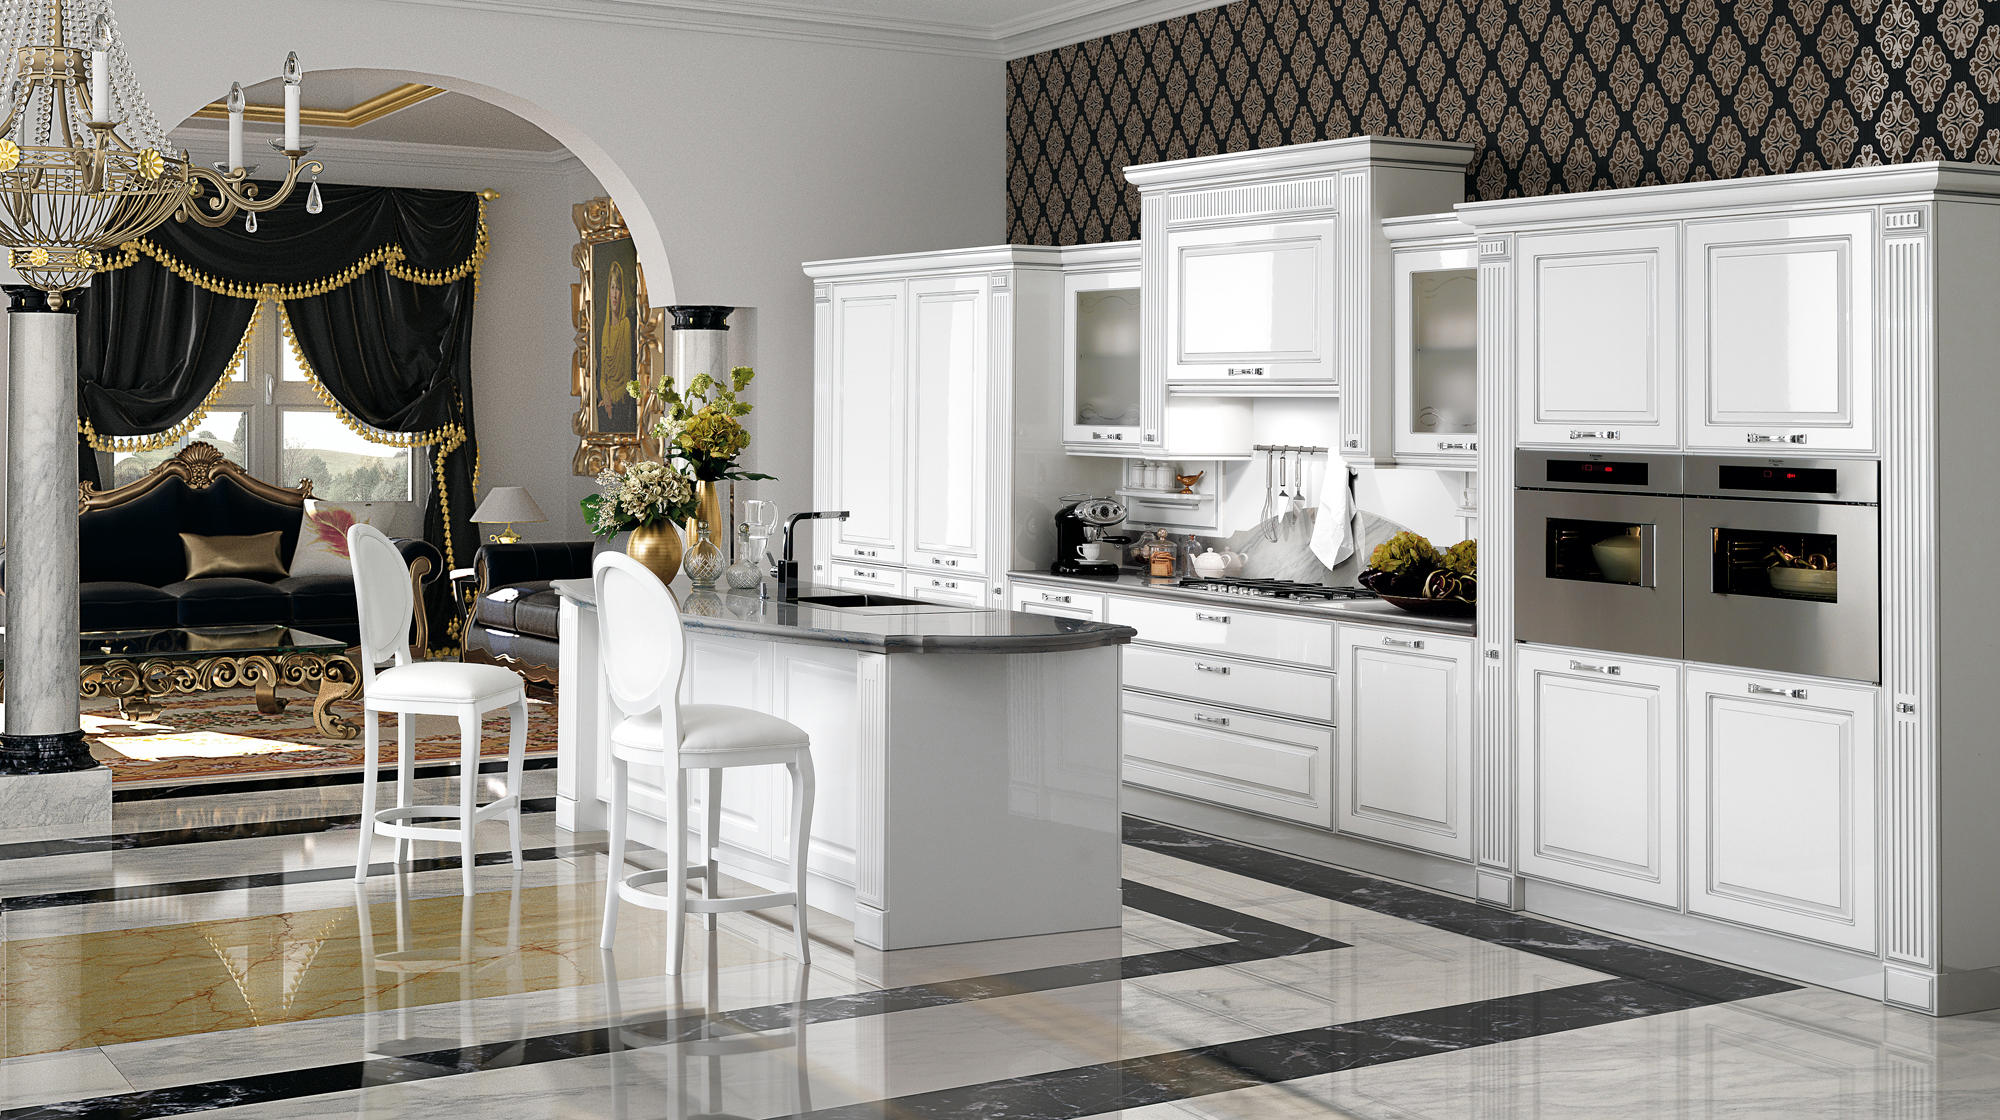 MIRABEAU  Fitted kitchens from Veneta Cucine  Architonic